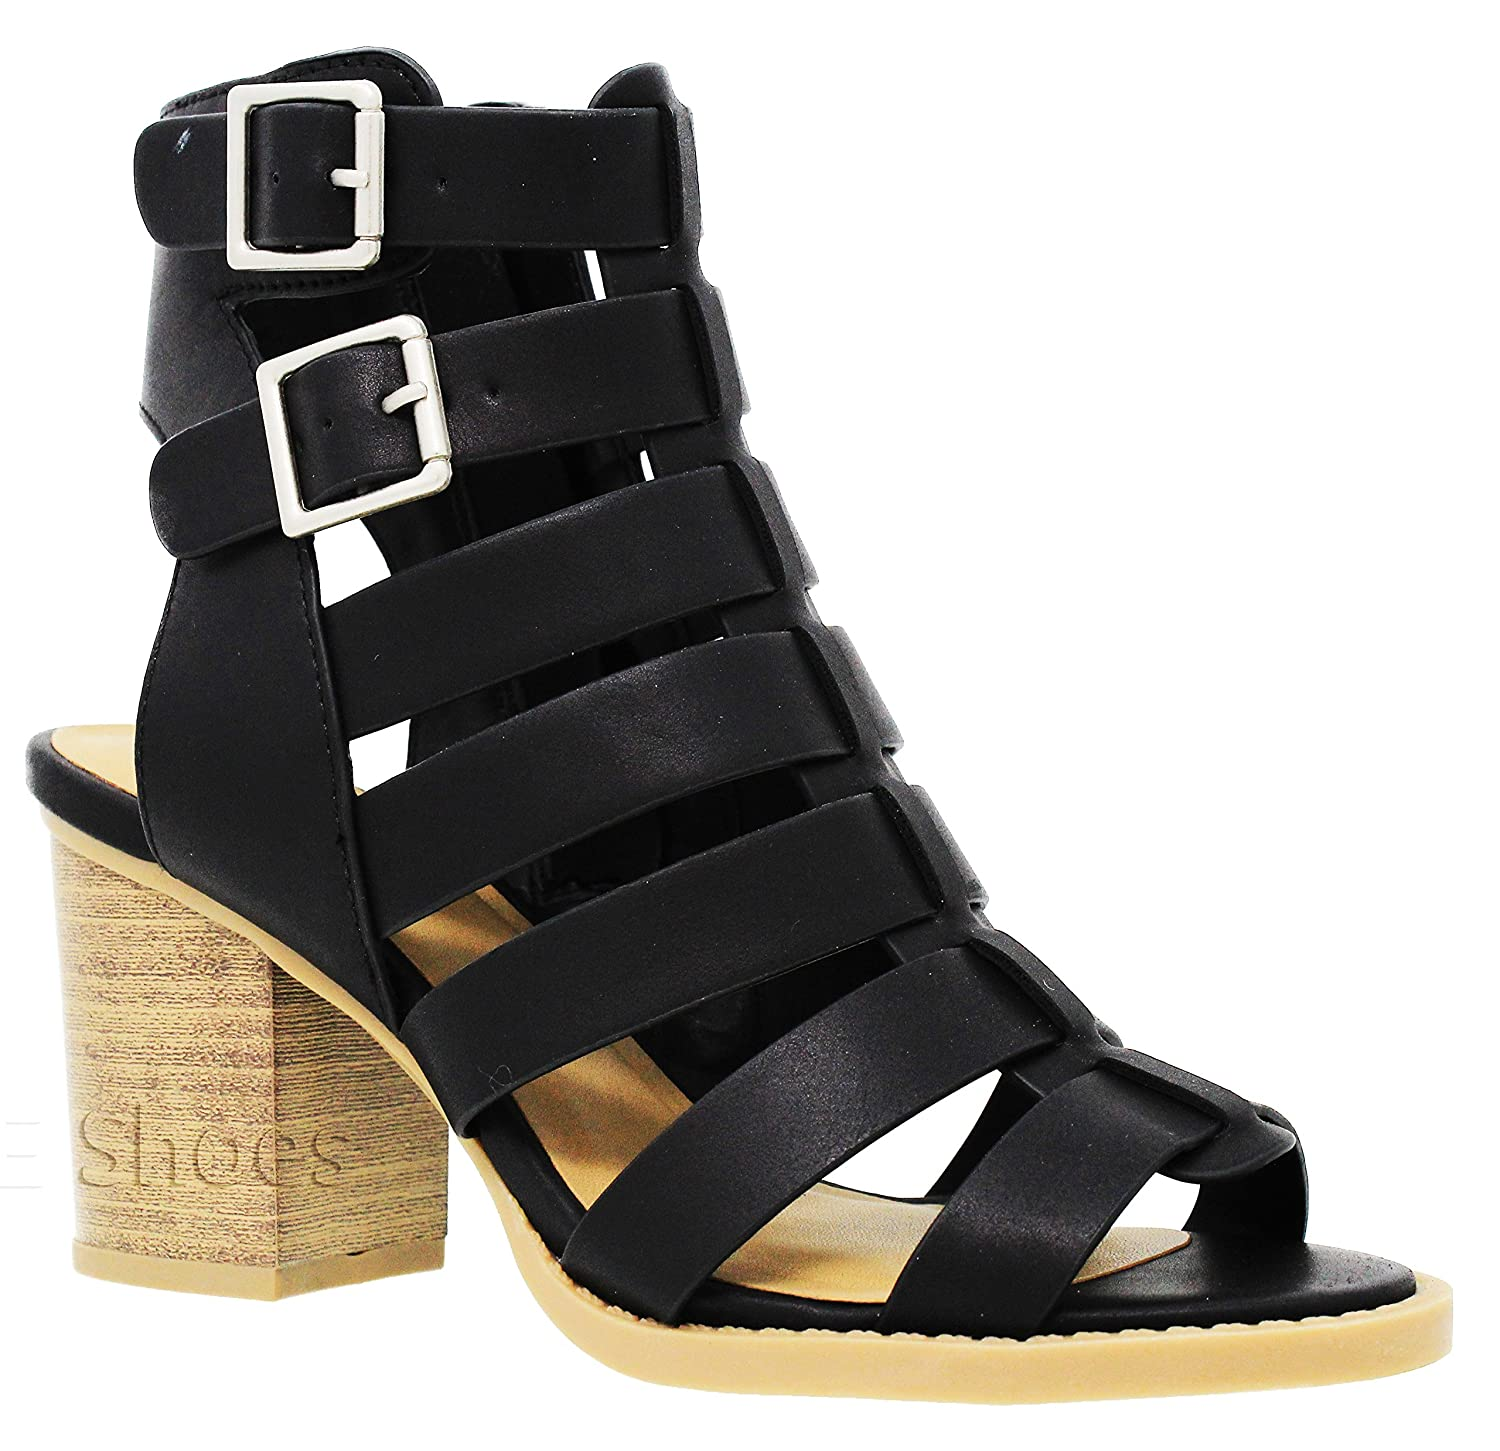 MVE Shoes Women's Open Toe Cut Out Mid Heel Sandal - Ankle Strap Faux Leather Dress Shoes - Sexy Stacked Sandal B0799R1B3B 7.5 B(M) US|Blackpu*n